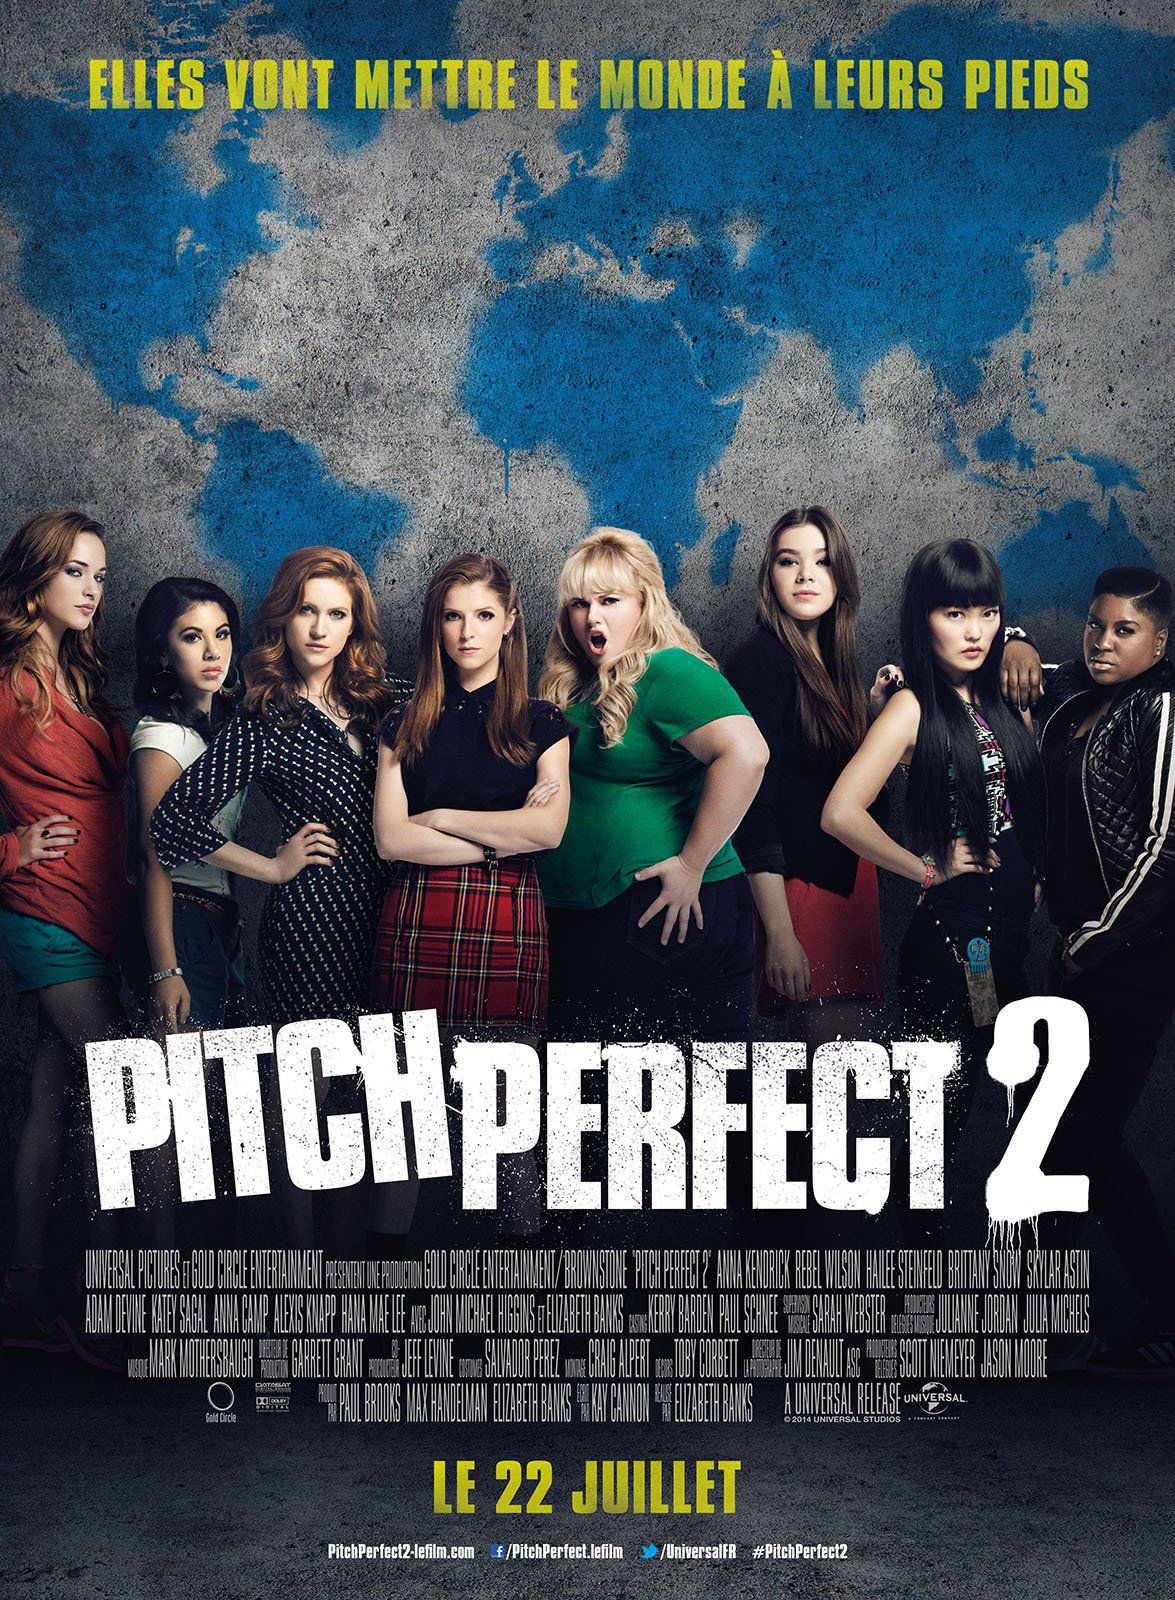 Pitch Perfect 2 - Film (2015)